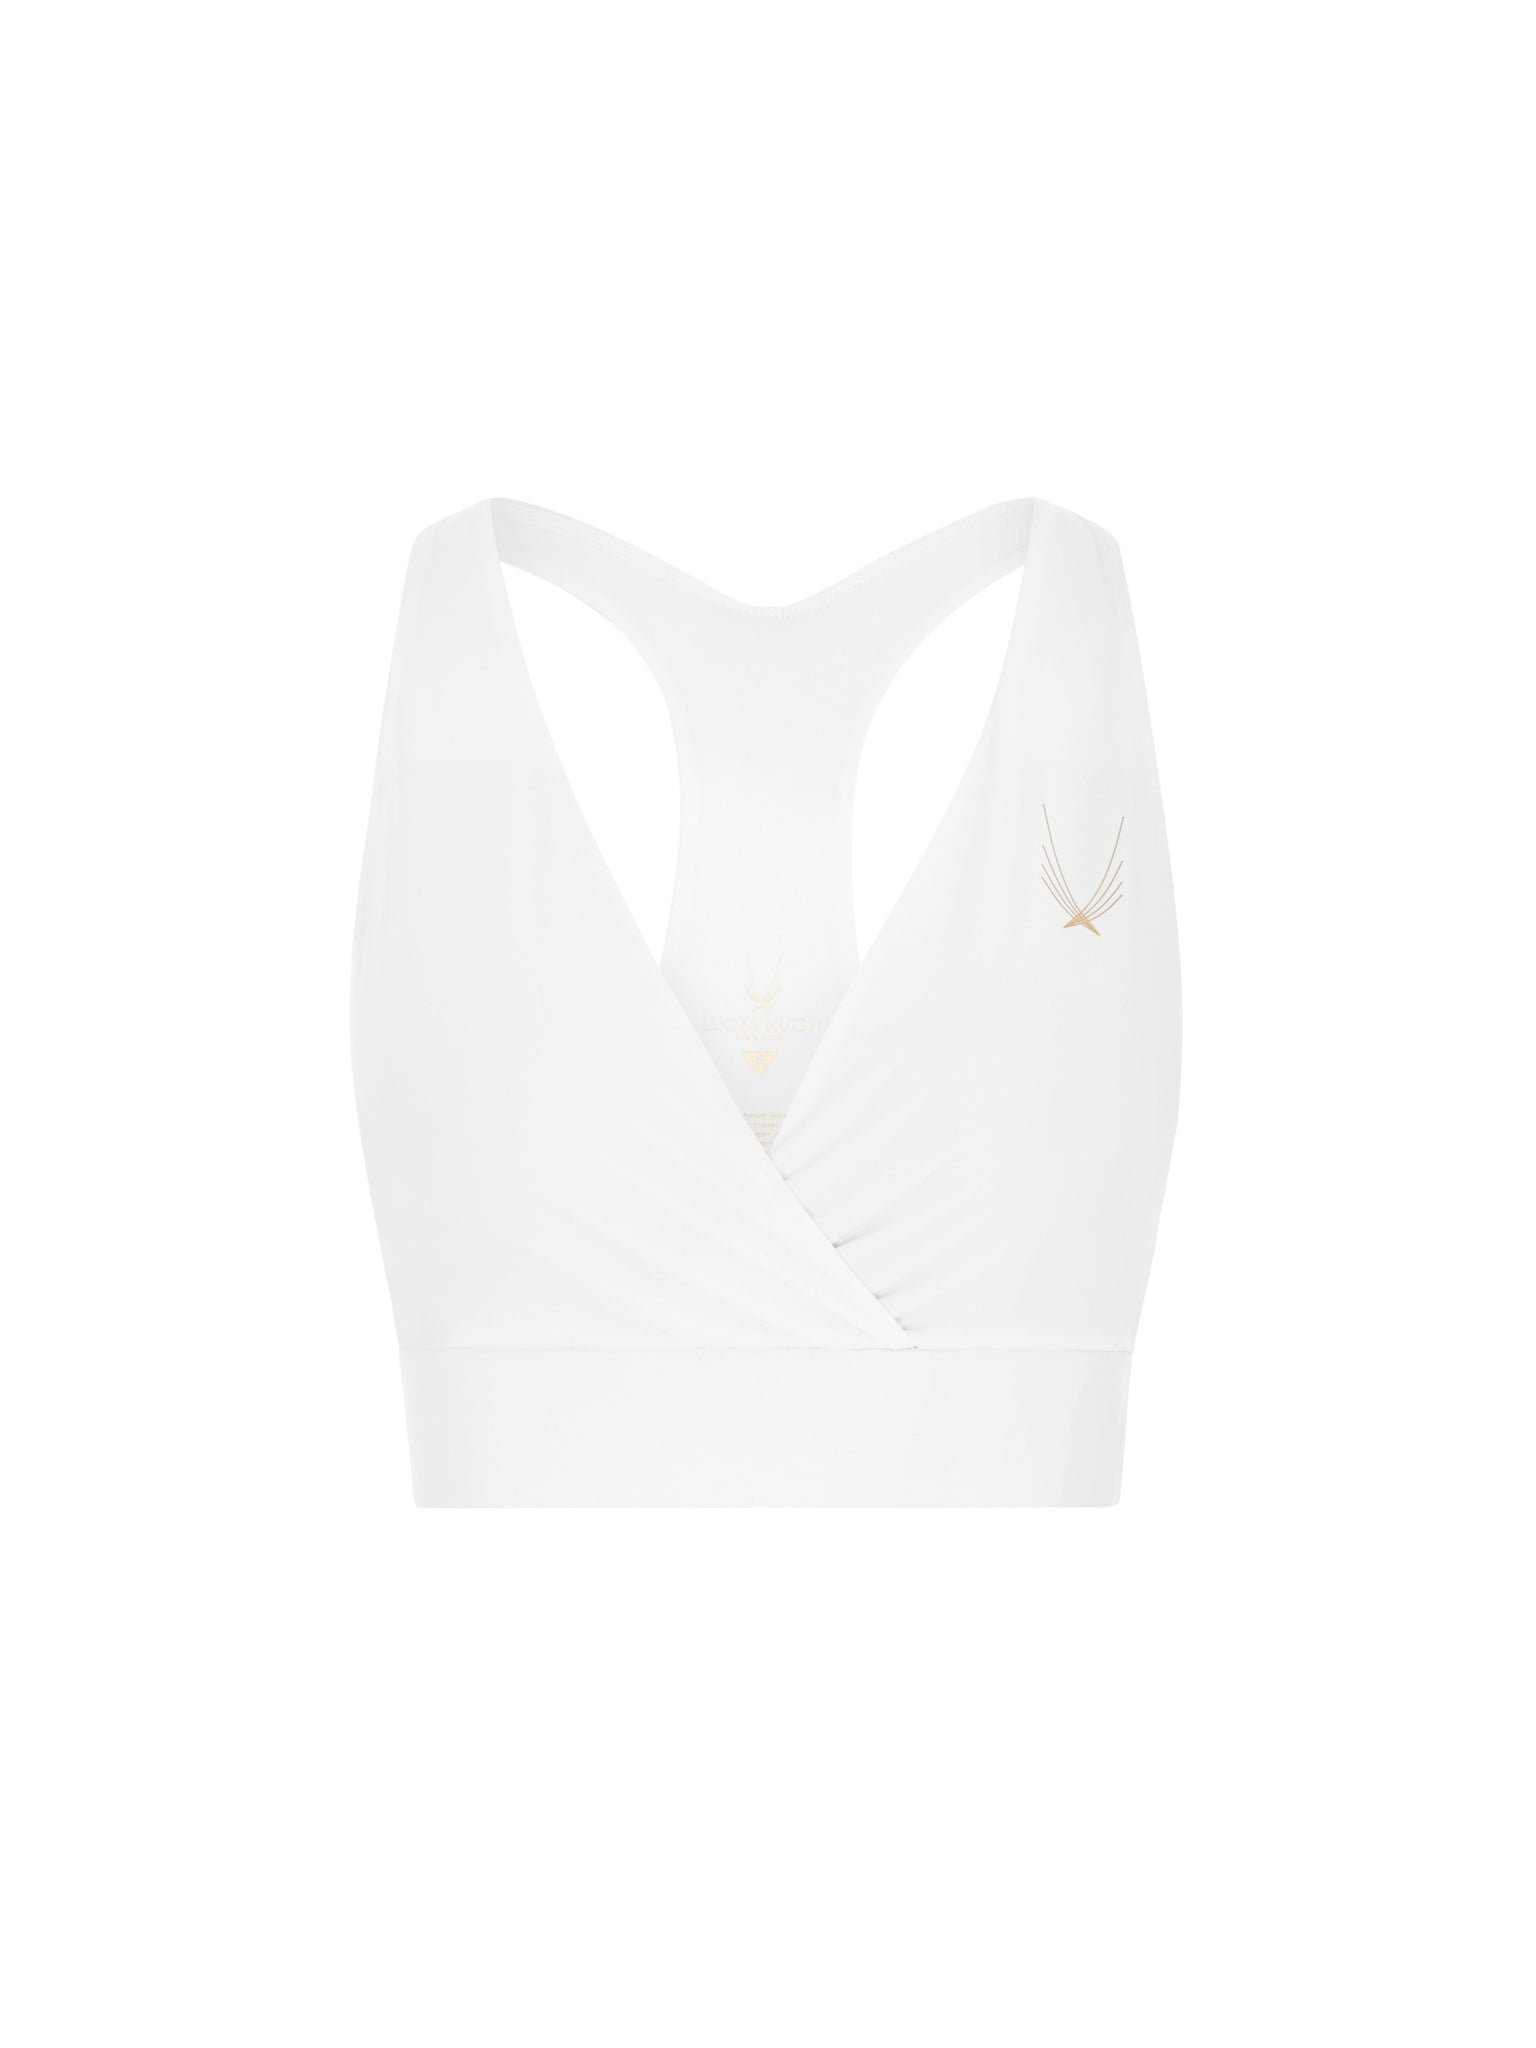 racer back white sports bra from lucas hugh in performance compression fabric